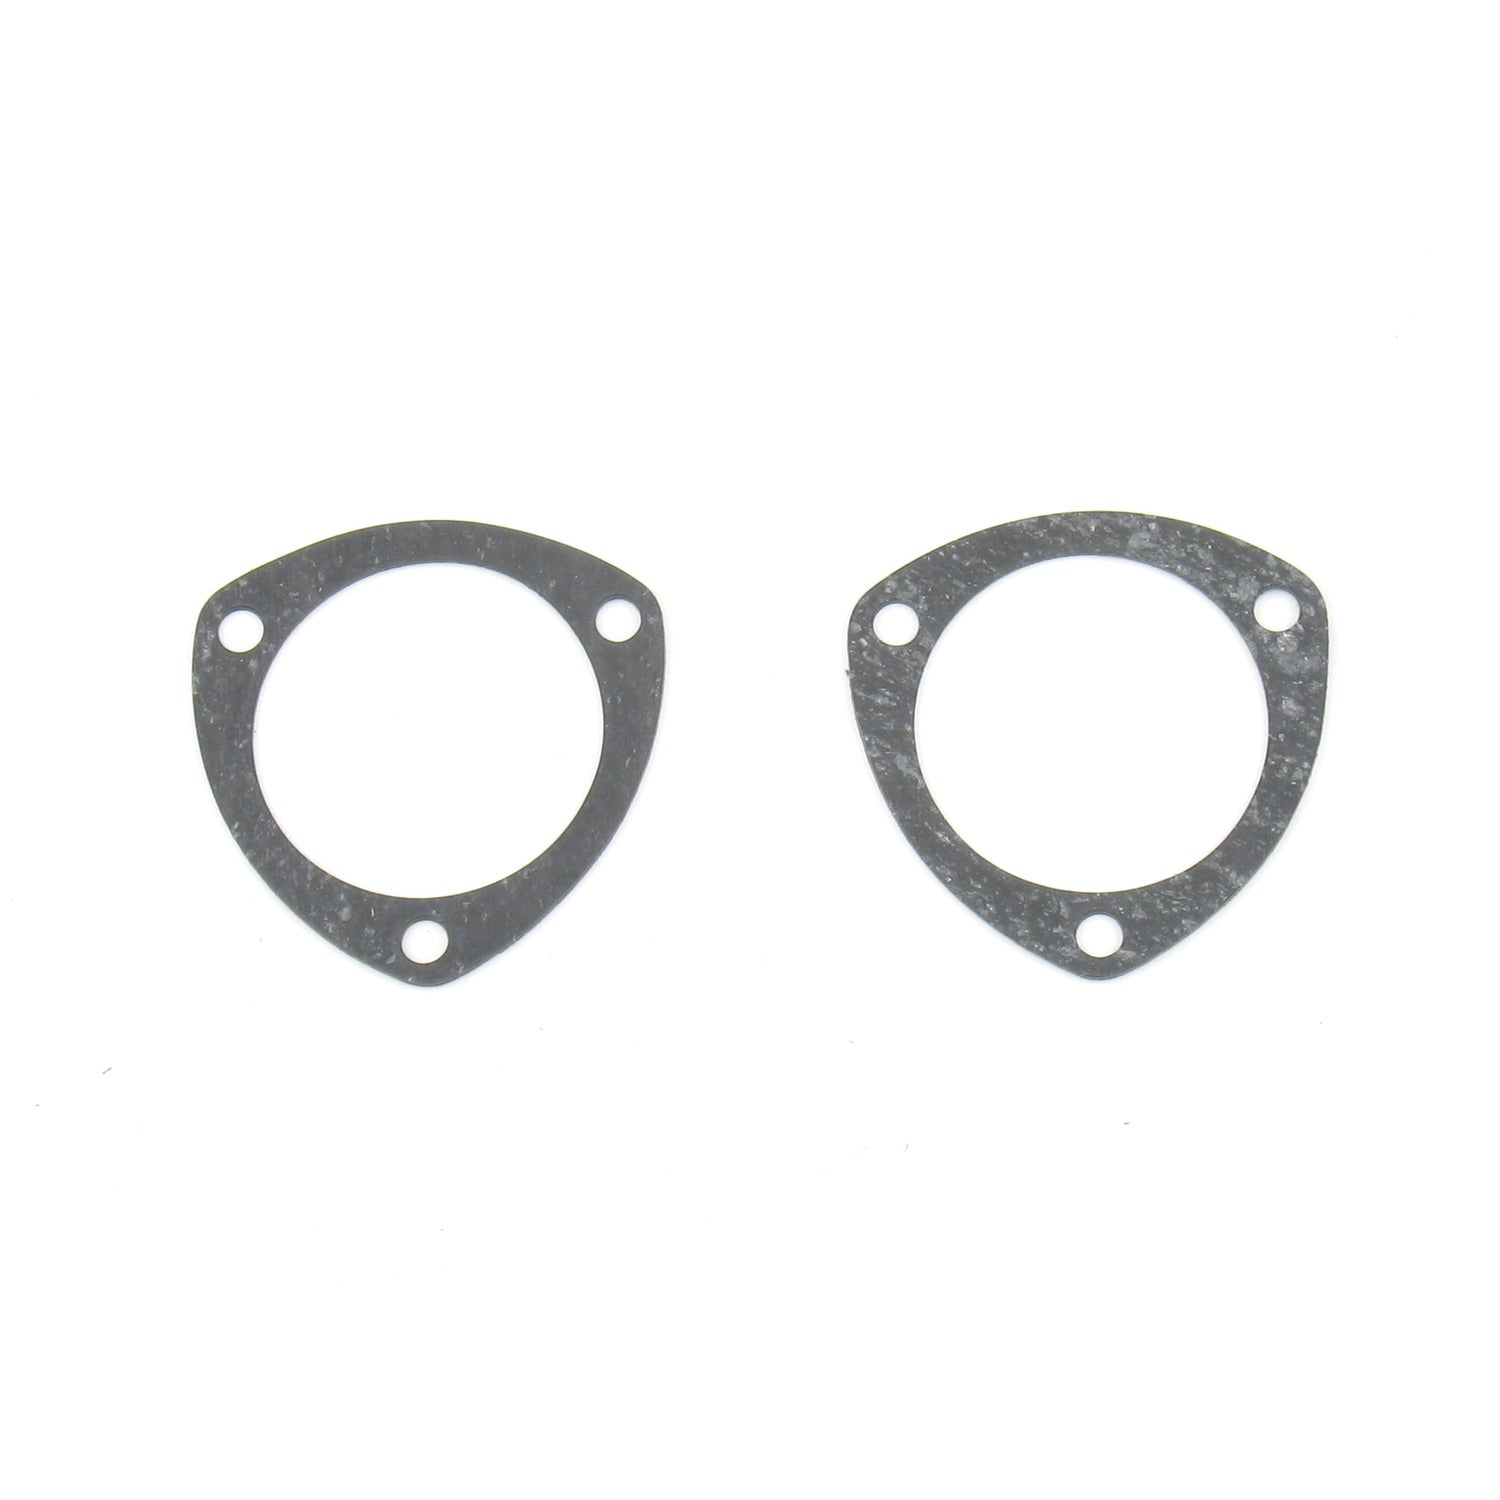 "Doug's Headers CG9006 3 bolt 3"" Collector Gaskets"